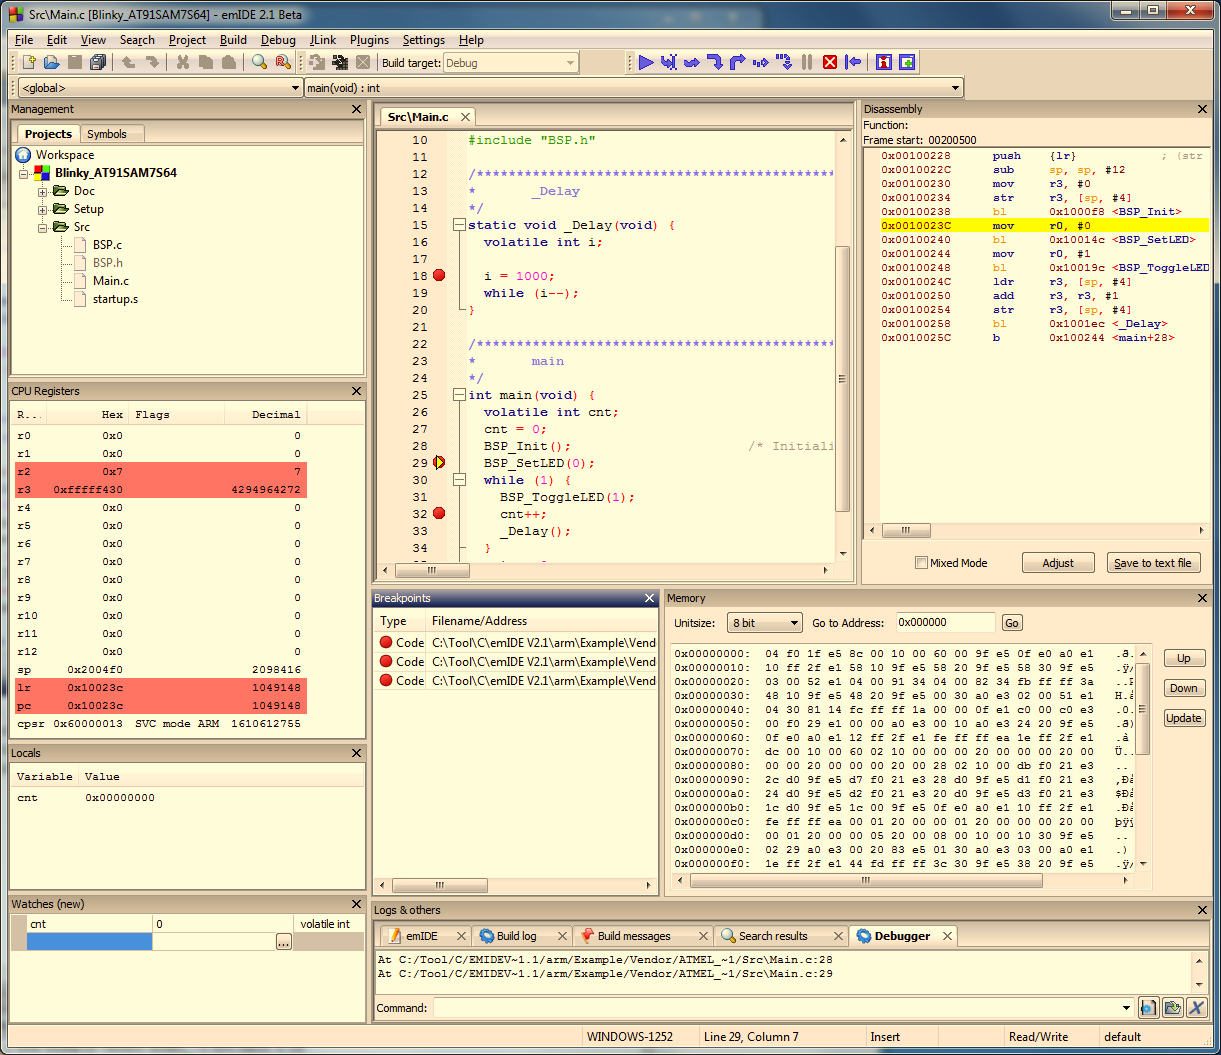 87 The screenshot below shows a debug session in IDE. For download and more information about emide, please refer to http://emide.org. Console GDB can be used stand-alone as a console application.